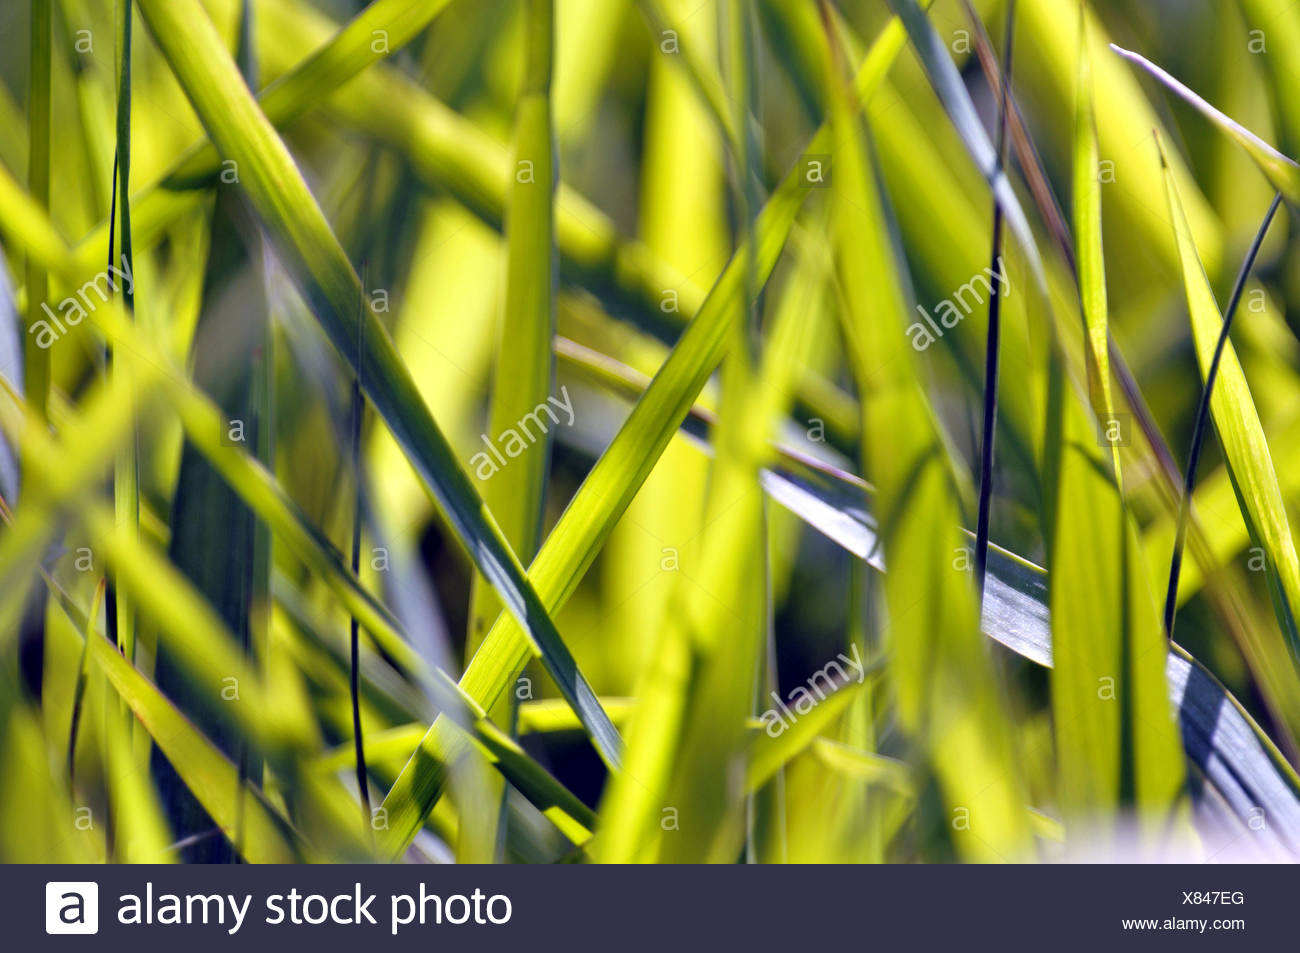 grass blades suffused with light - Stock Image